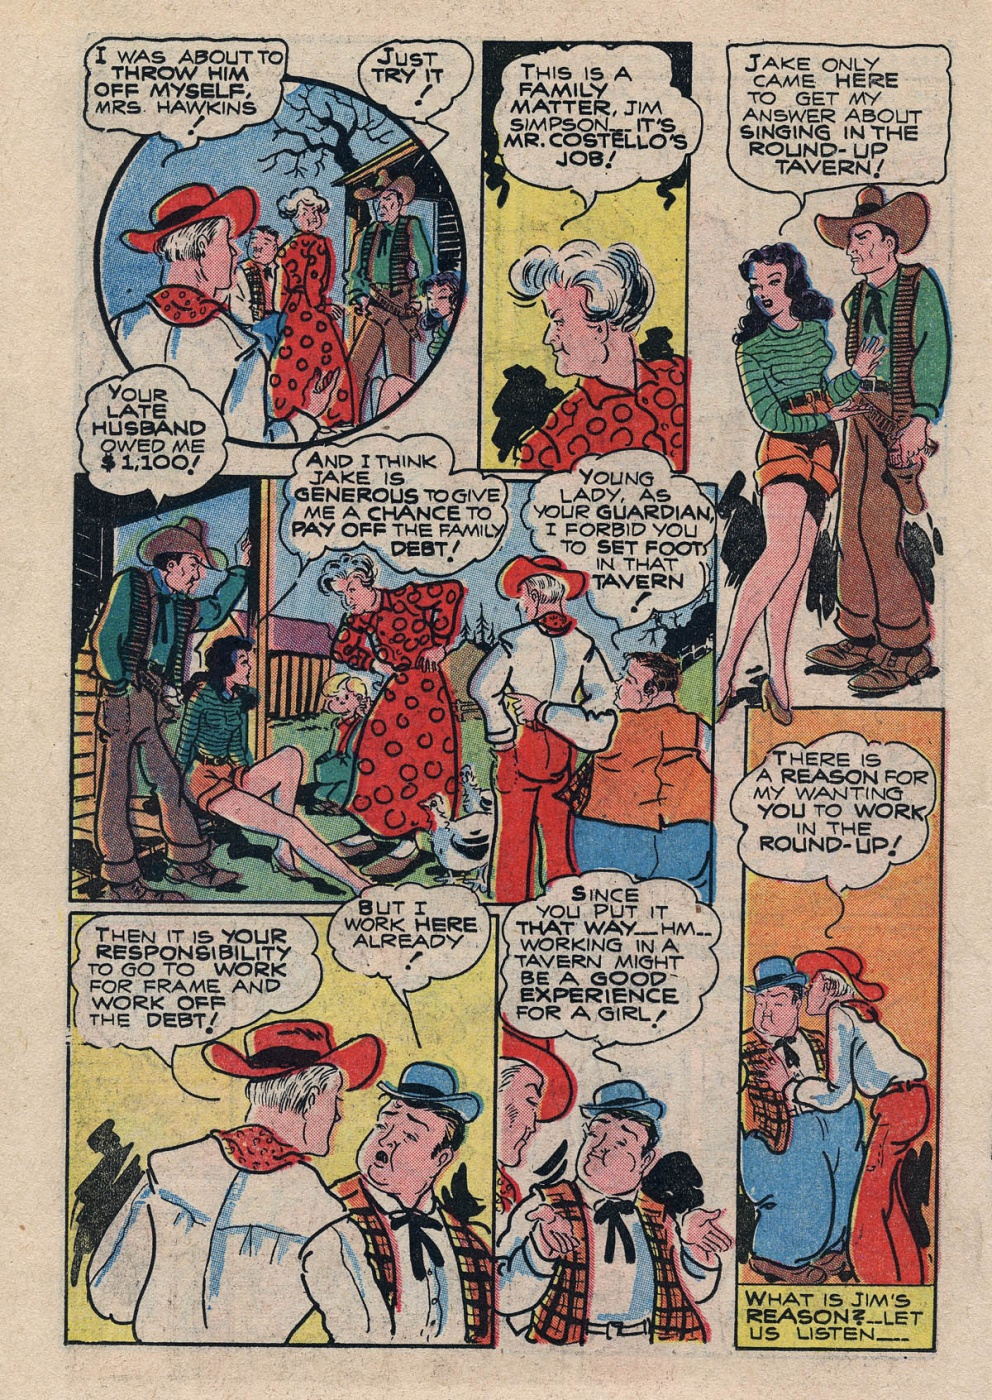 Funny Comic Strips - Abbott and Costello 001 (Feb 1948) 26